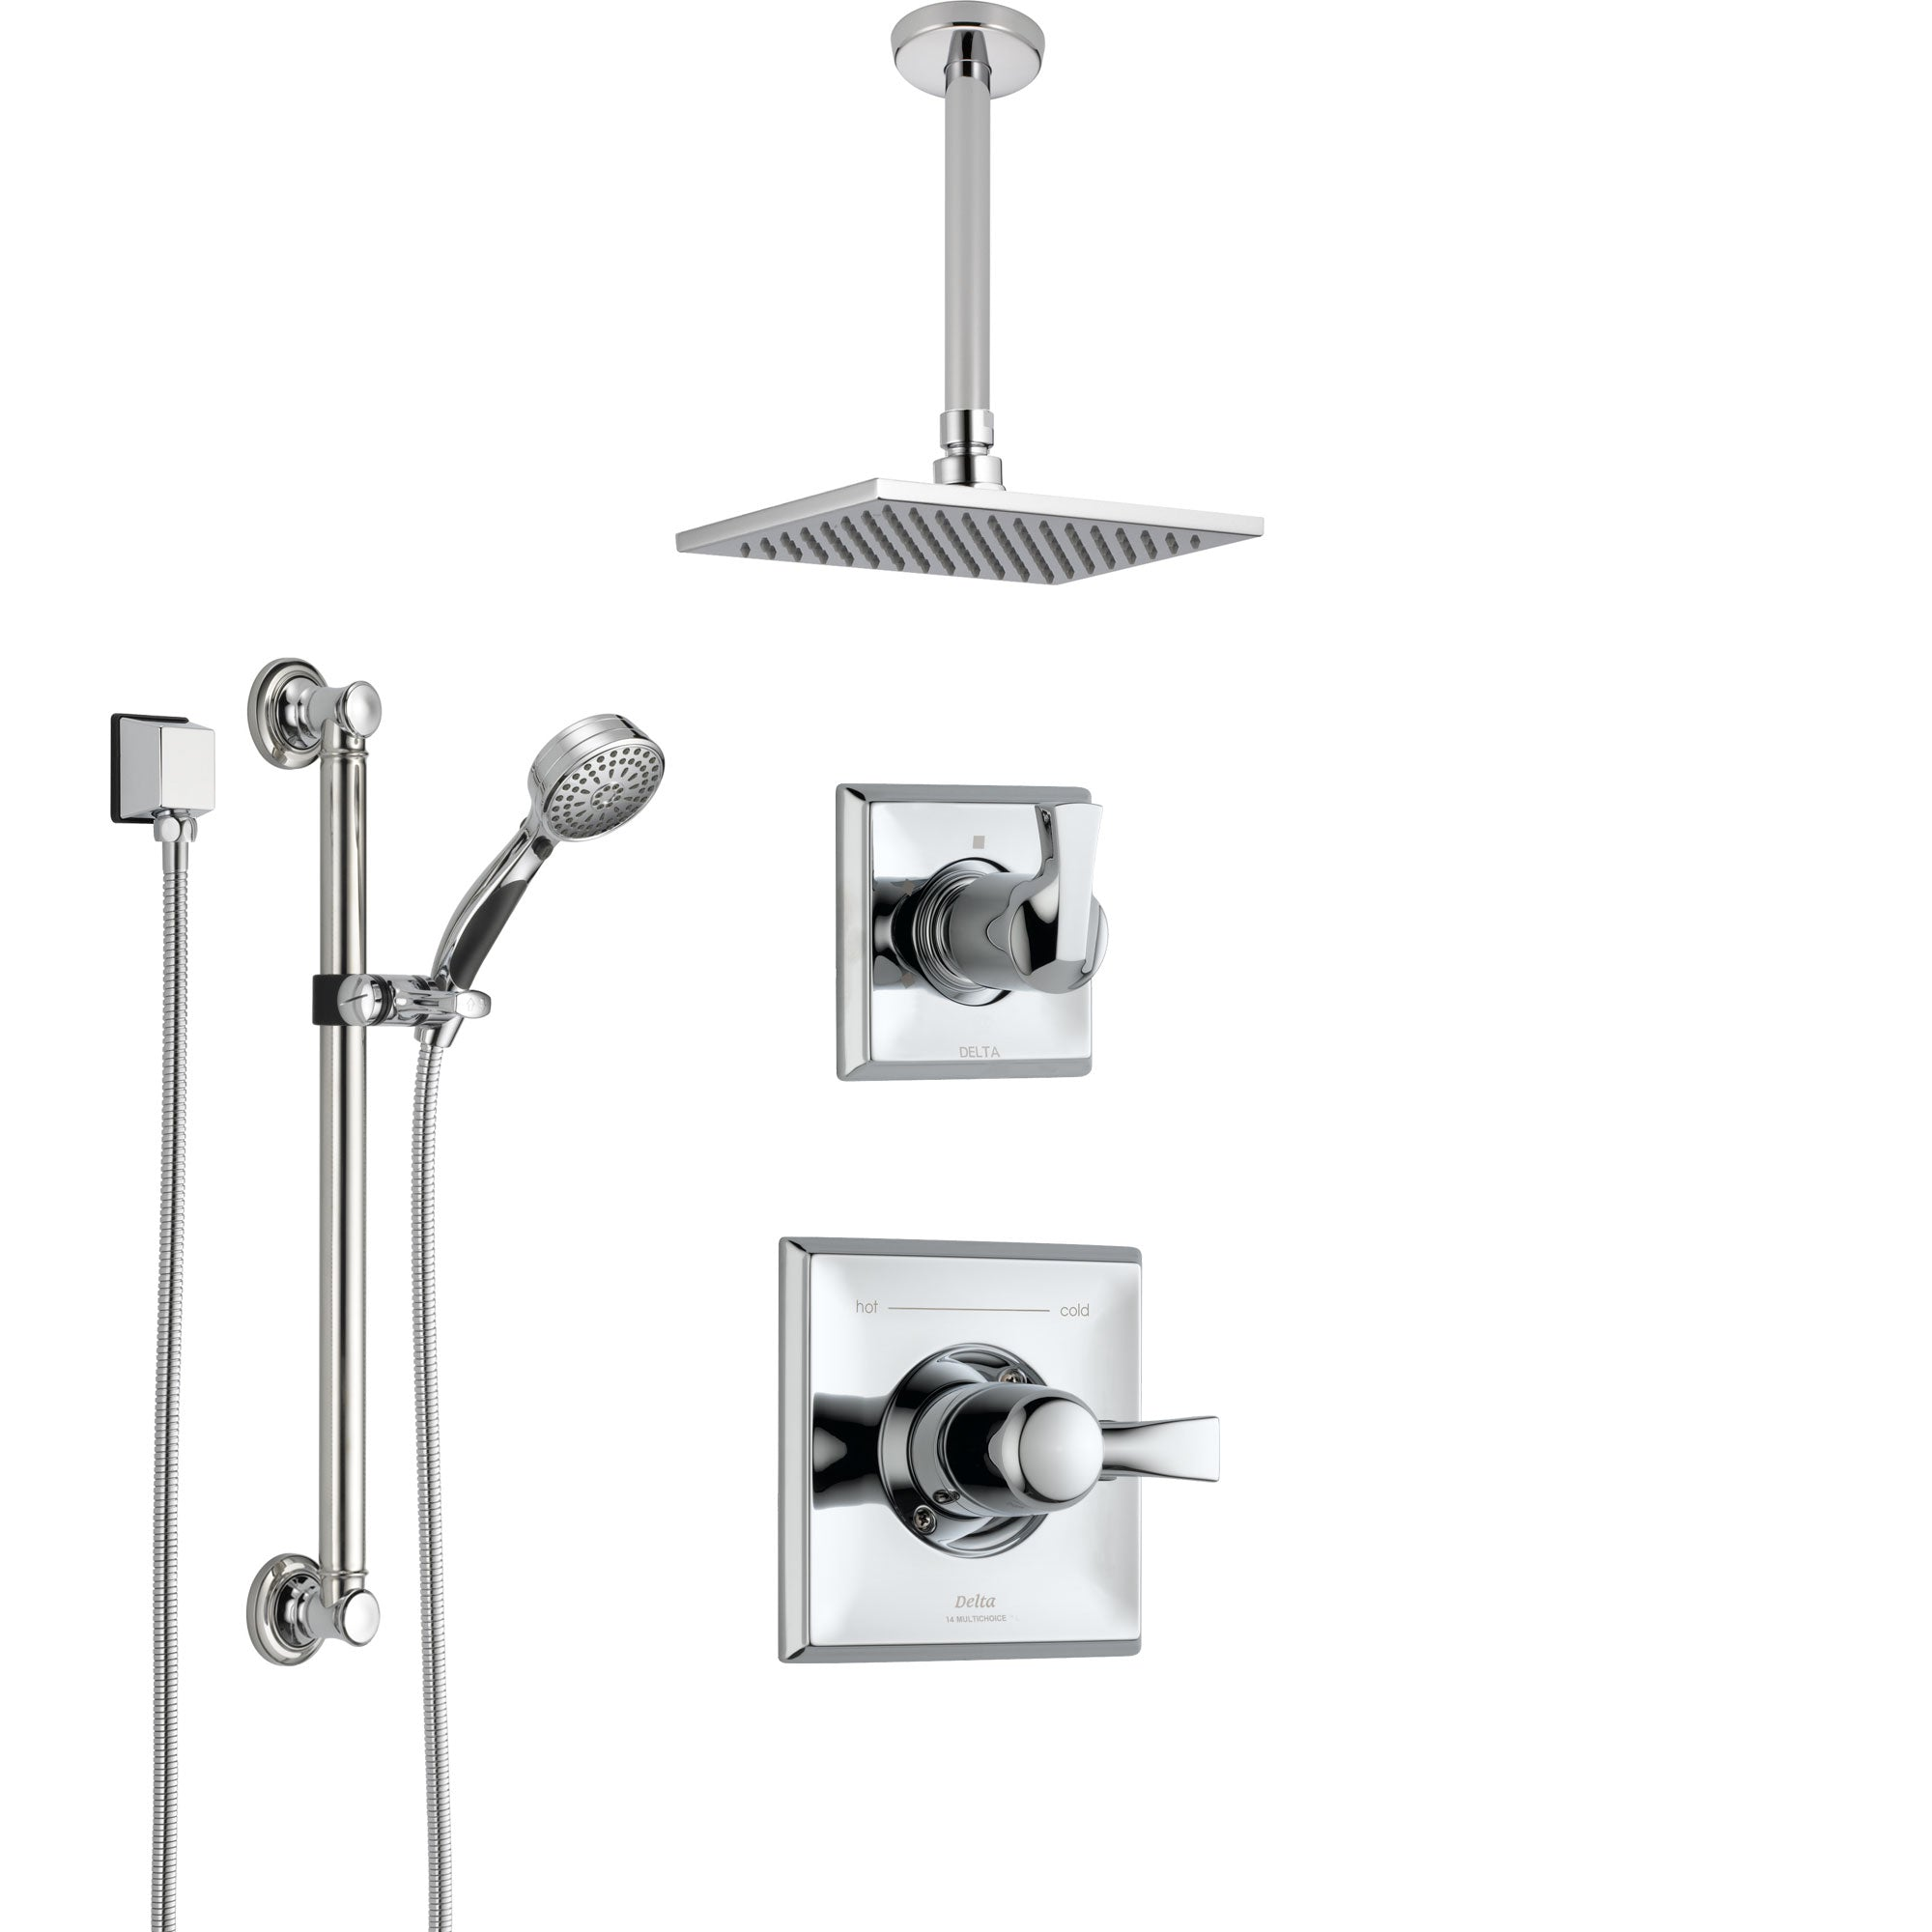 Delta Dryden Chrome Finish Shower System with Control Handle, 3-Setting Diverter, Ceiling Mount Showerhead, and Hand Shower with Grab Bar SS14511